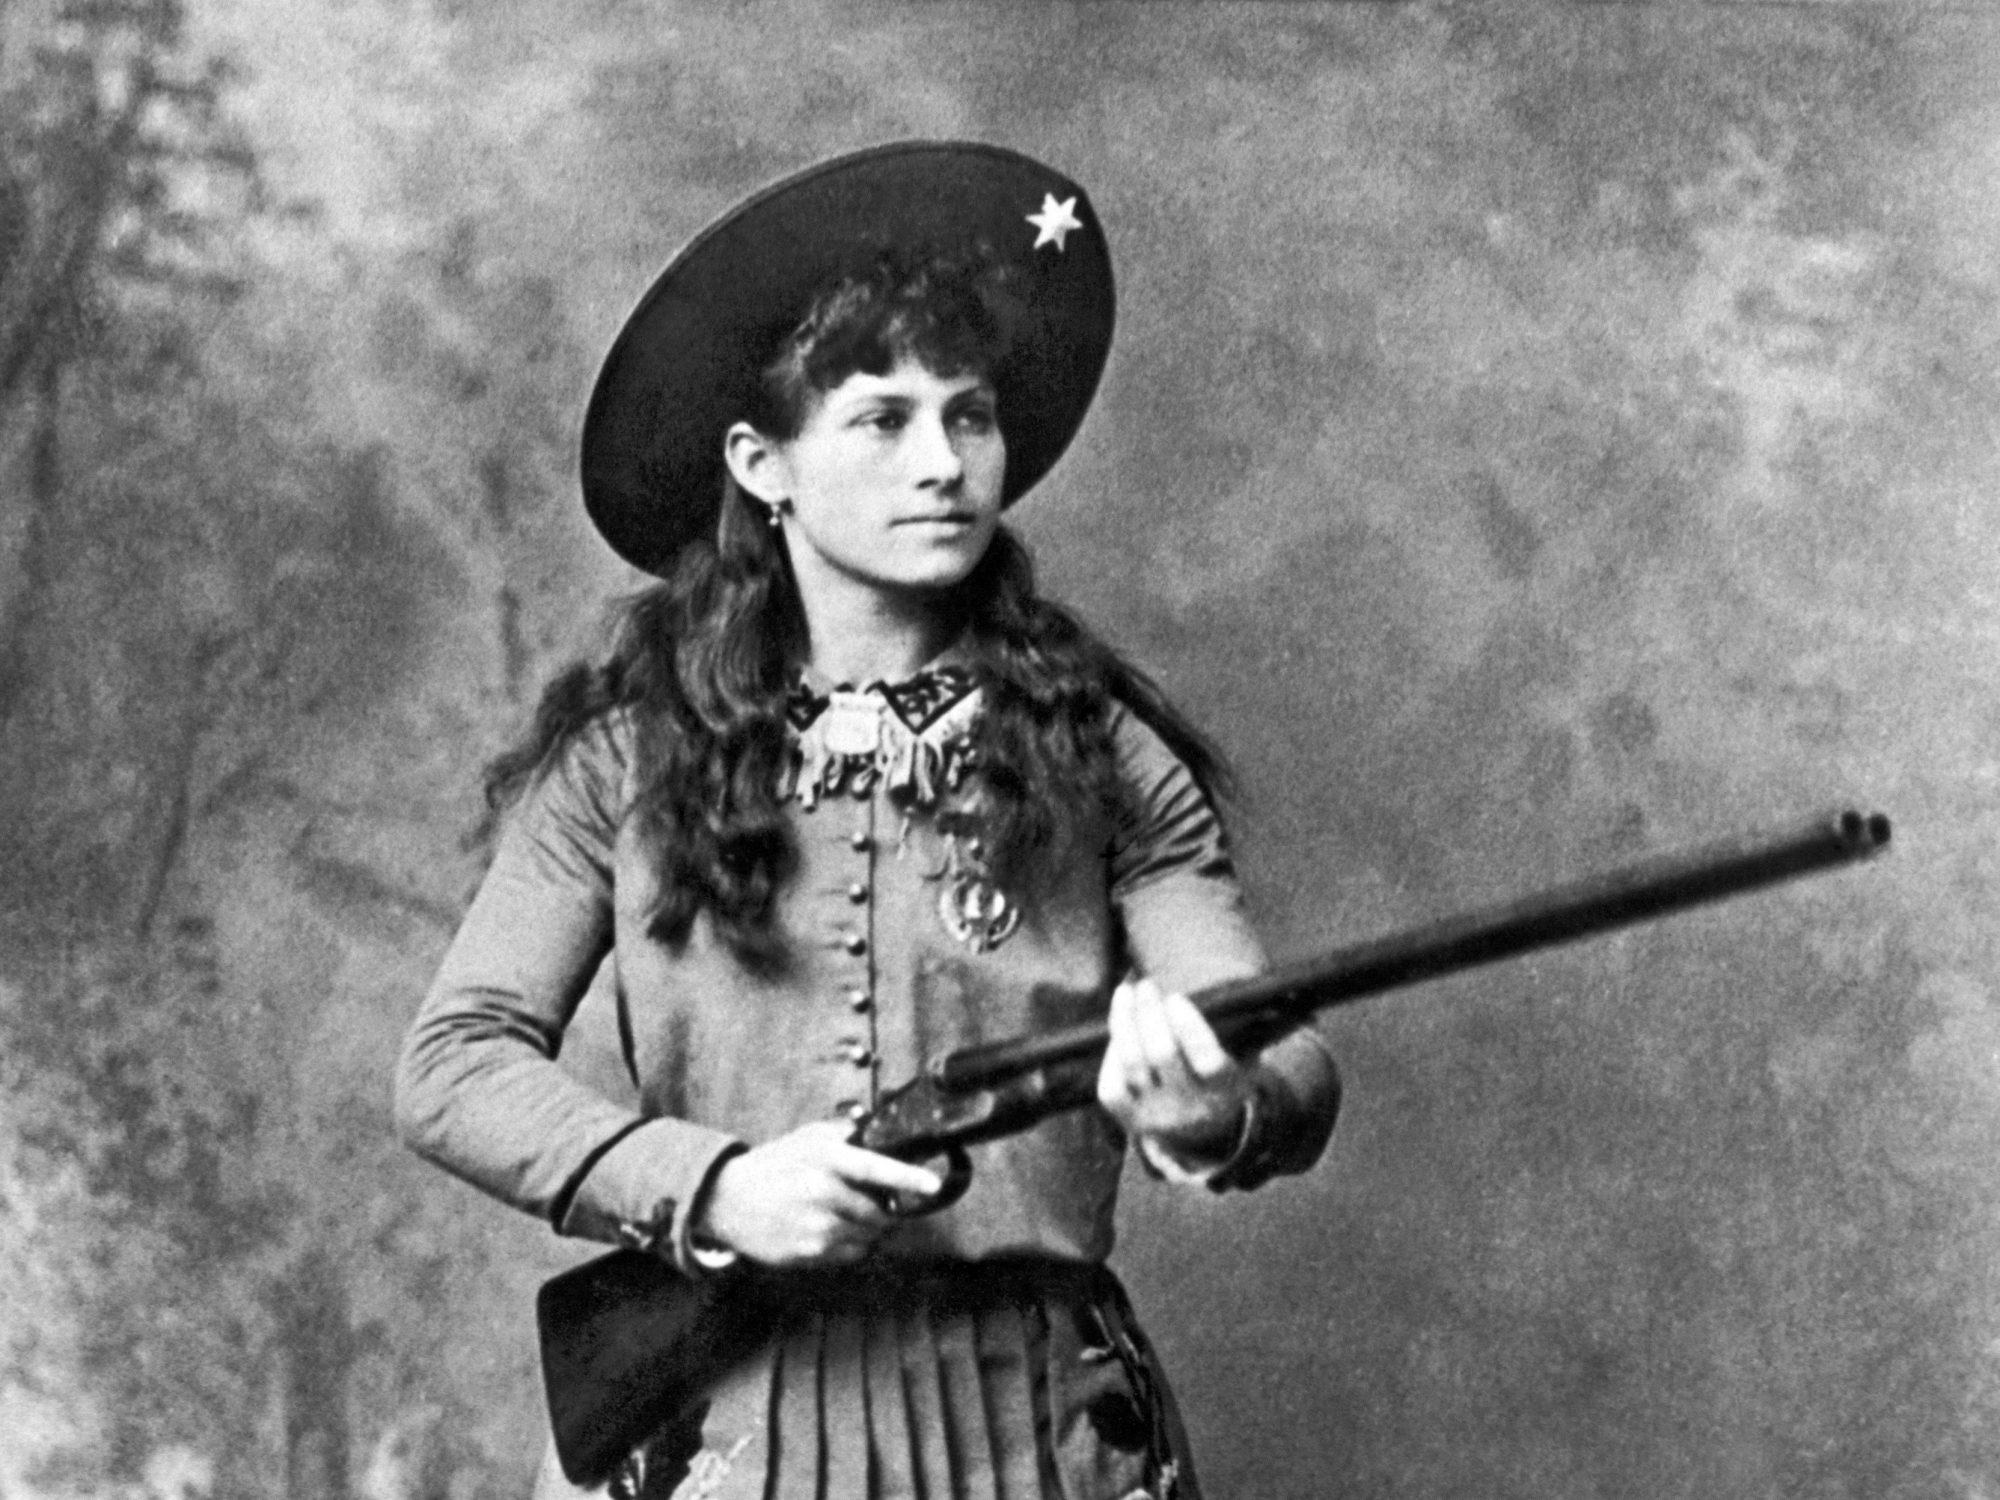 Breaking boundaries: The legacy of sharpshooter Annie Oakley